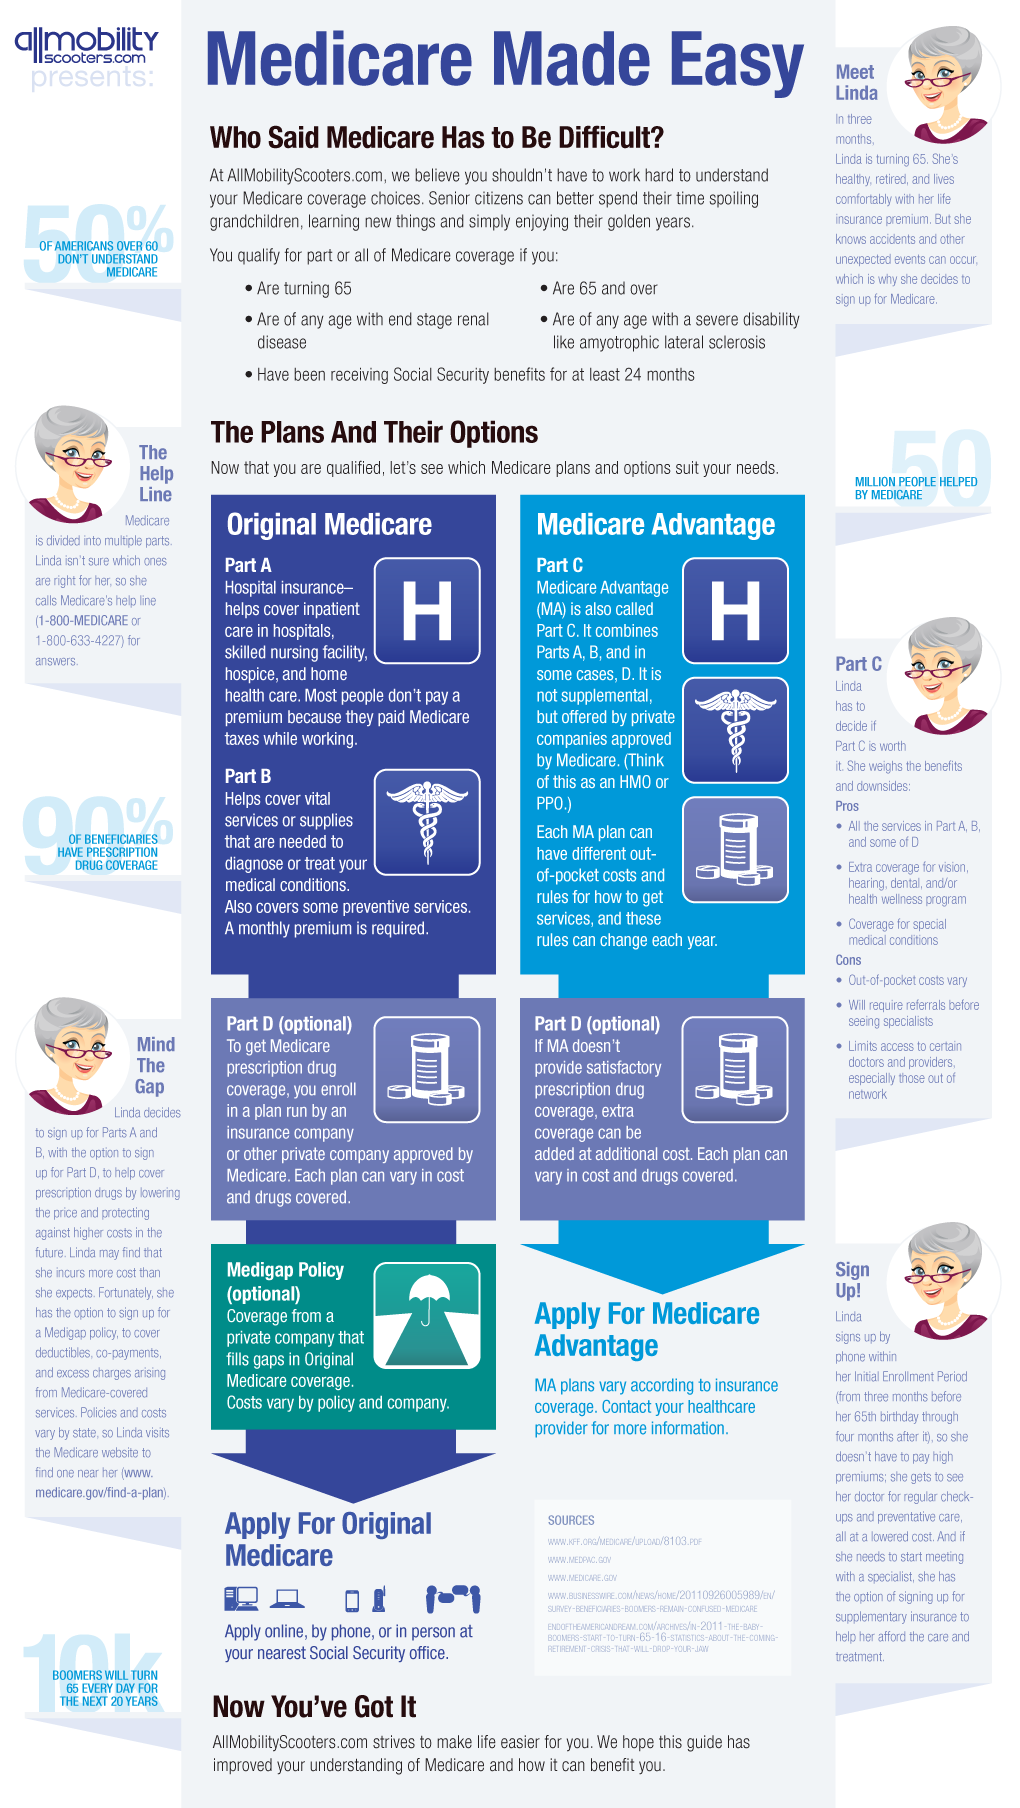 Medicare Made Easy Infographic Medical Social Work Geriatric